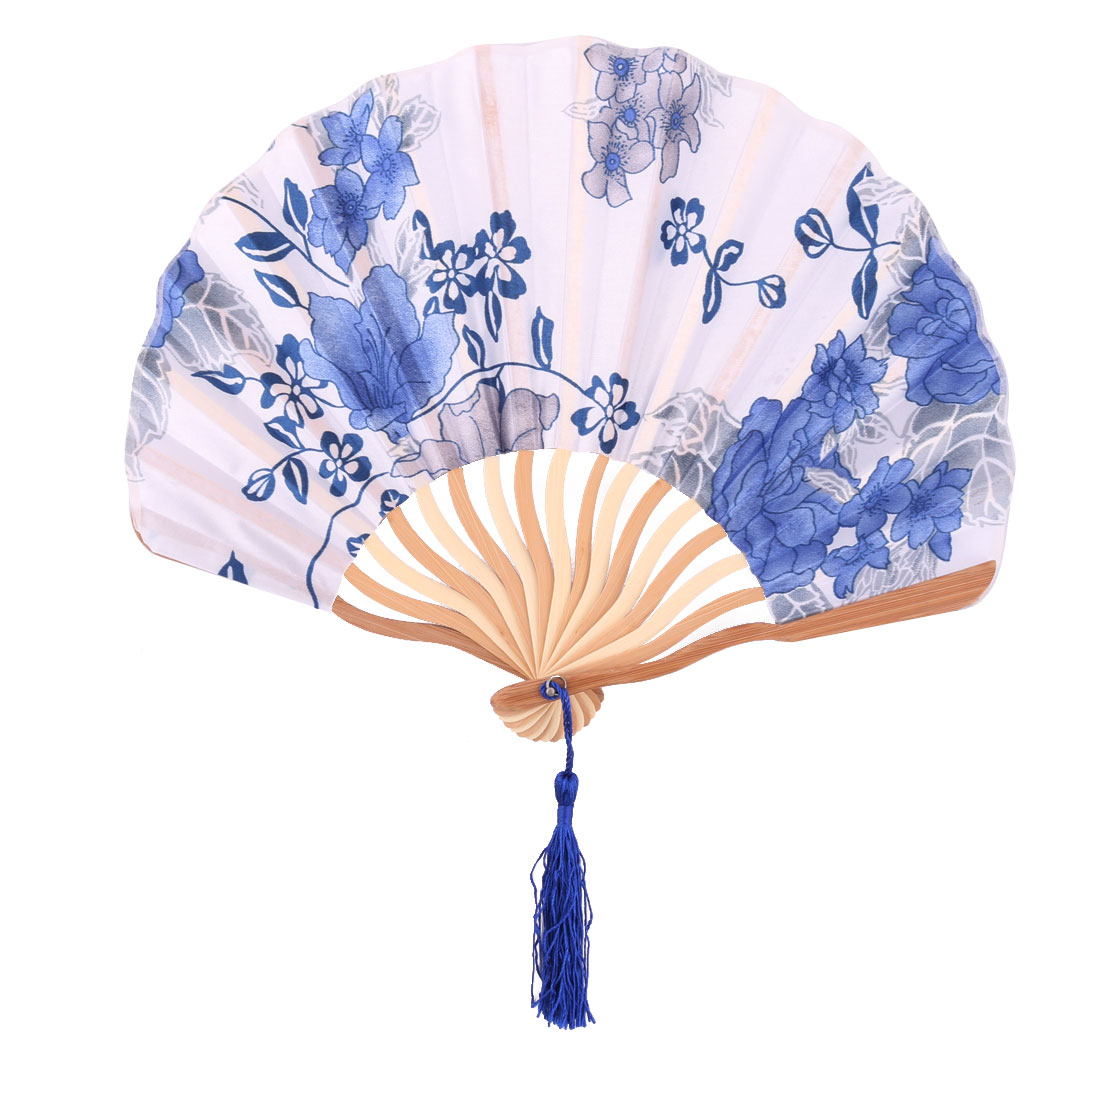 Lady Outdoor Polyester Classical Style Folding Summer Cooling Hand Fan 23cm Length